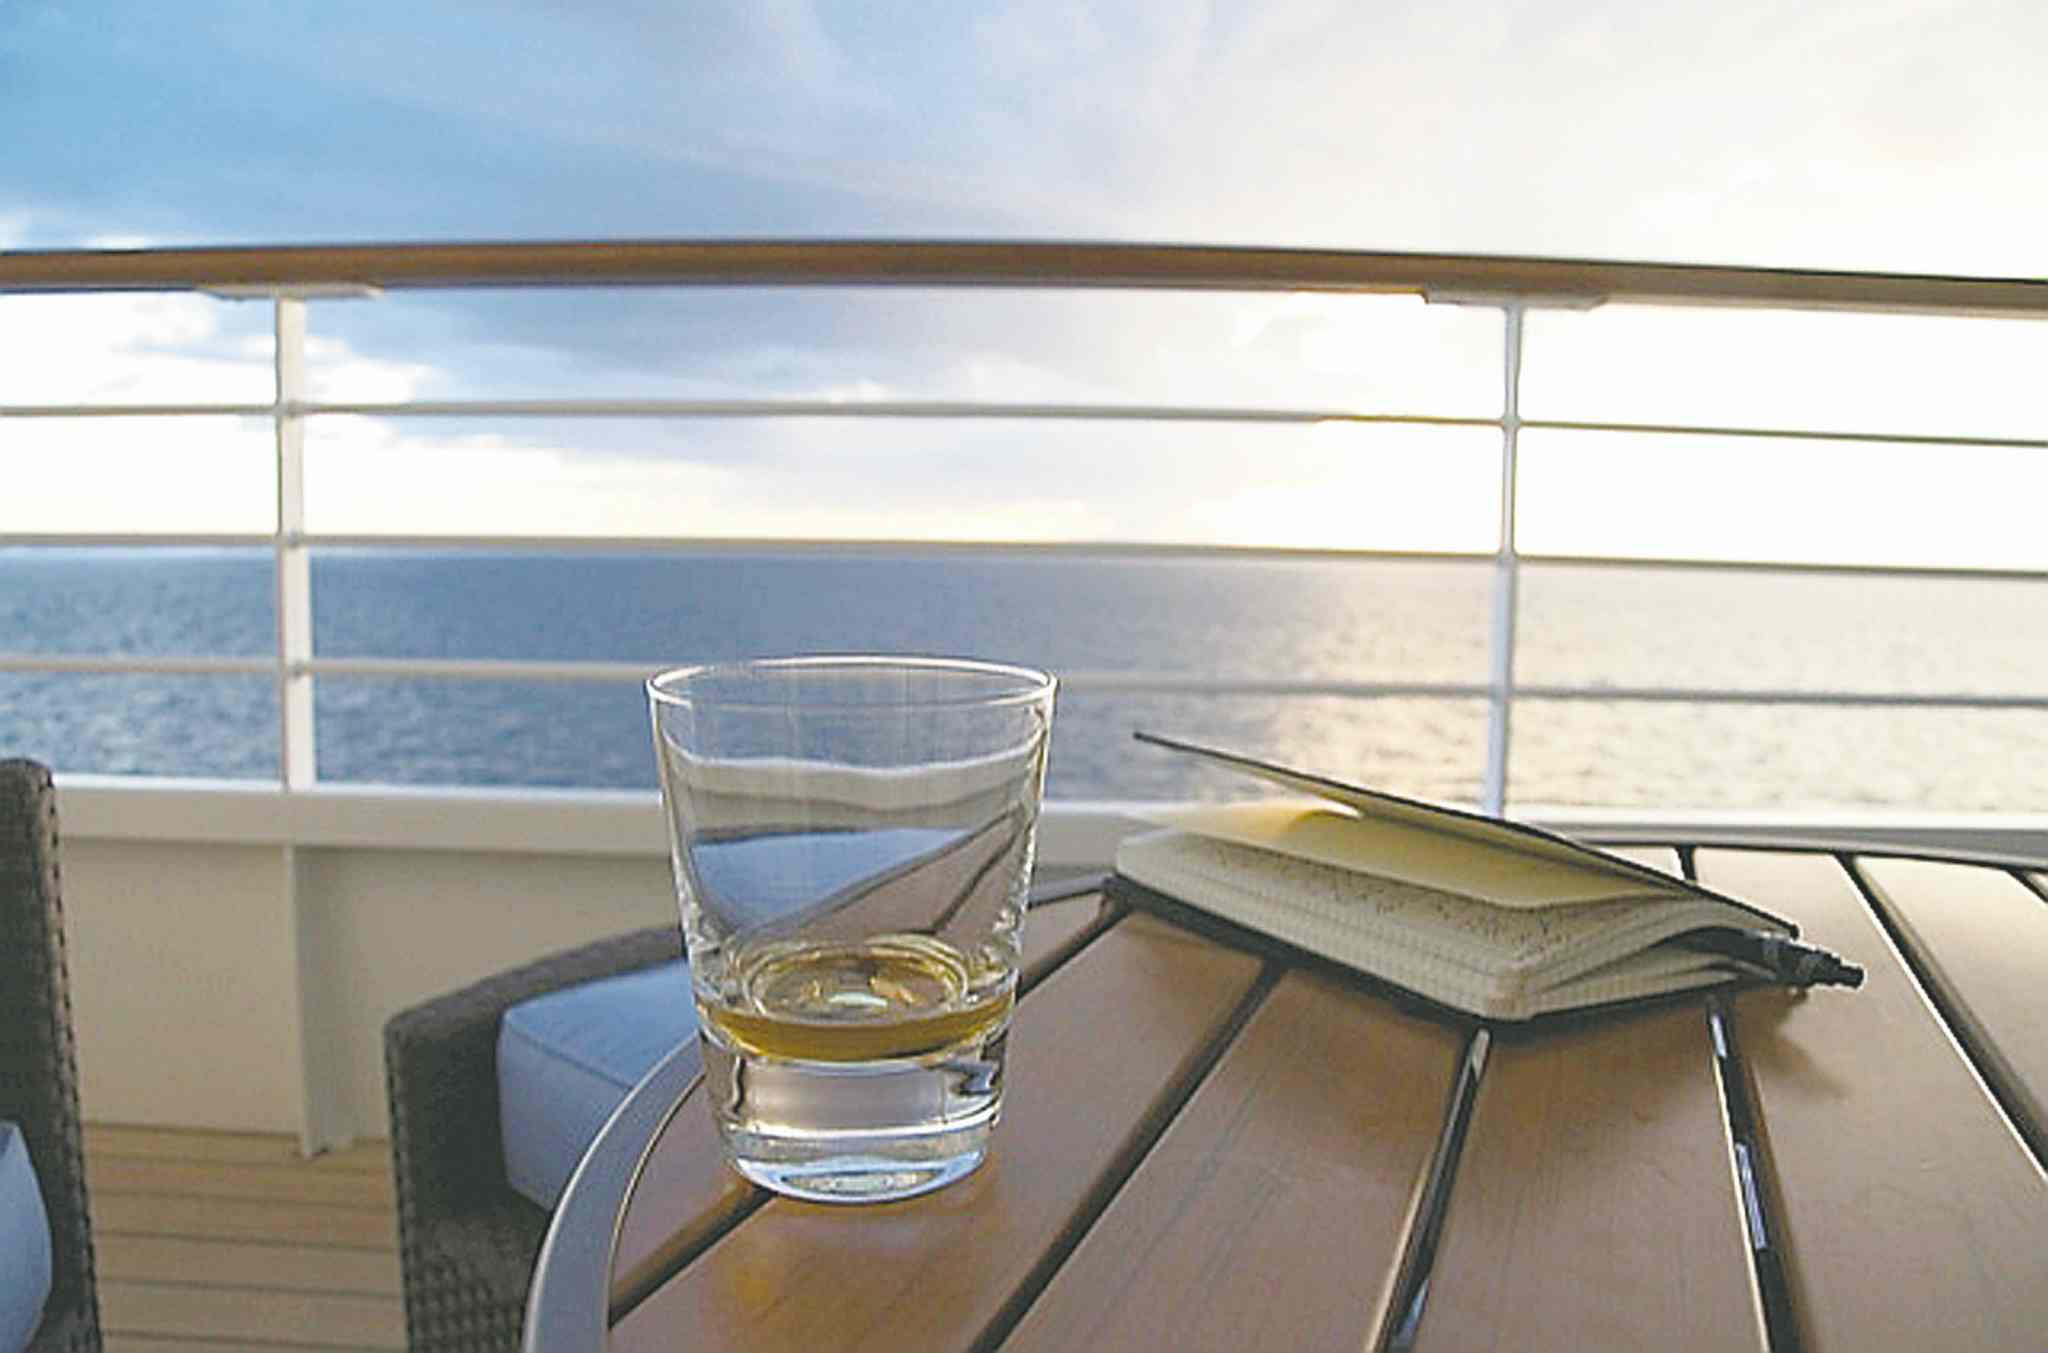 photos by Postmedia Network Inc. 2013Crystal Cruises specializes in high-end service and food.